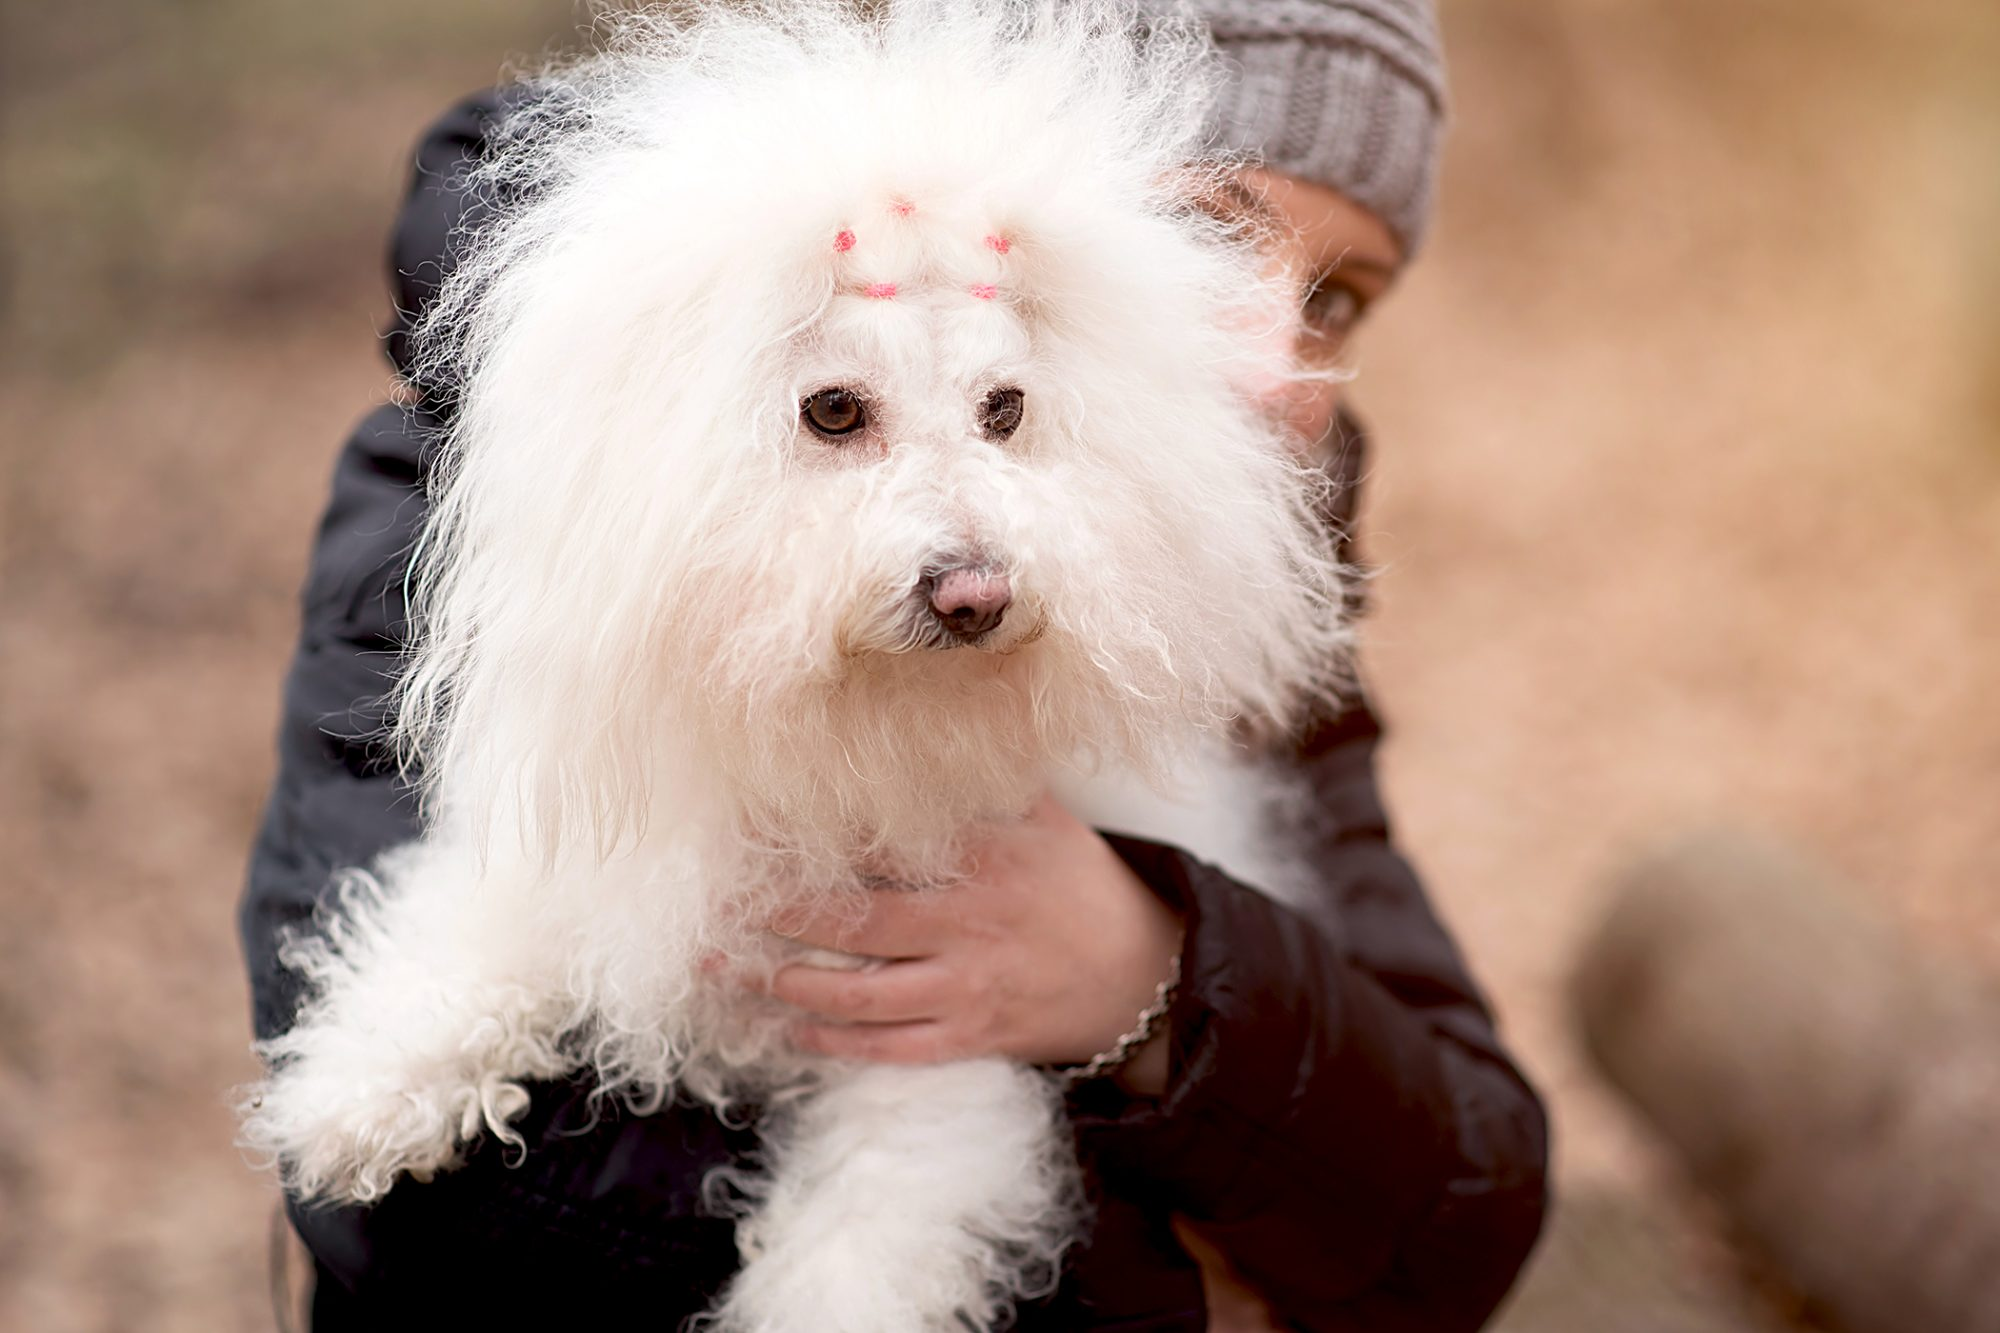 owner holding a fluffy bolognese dog outside in a field